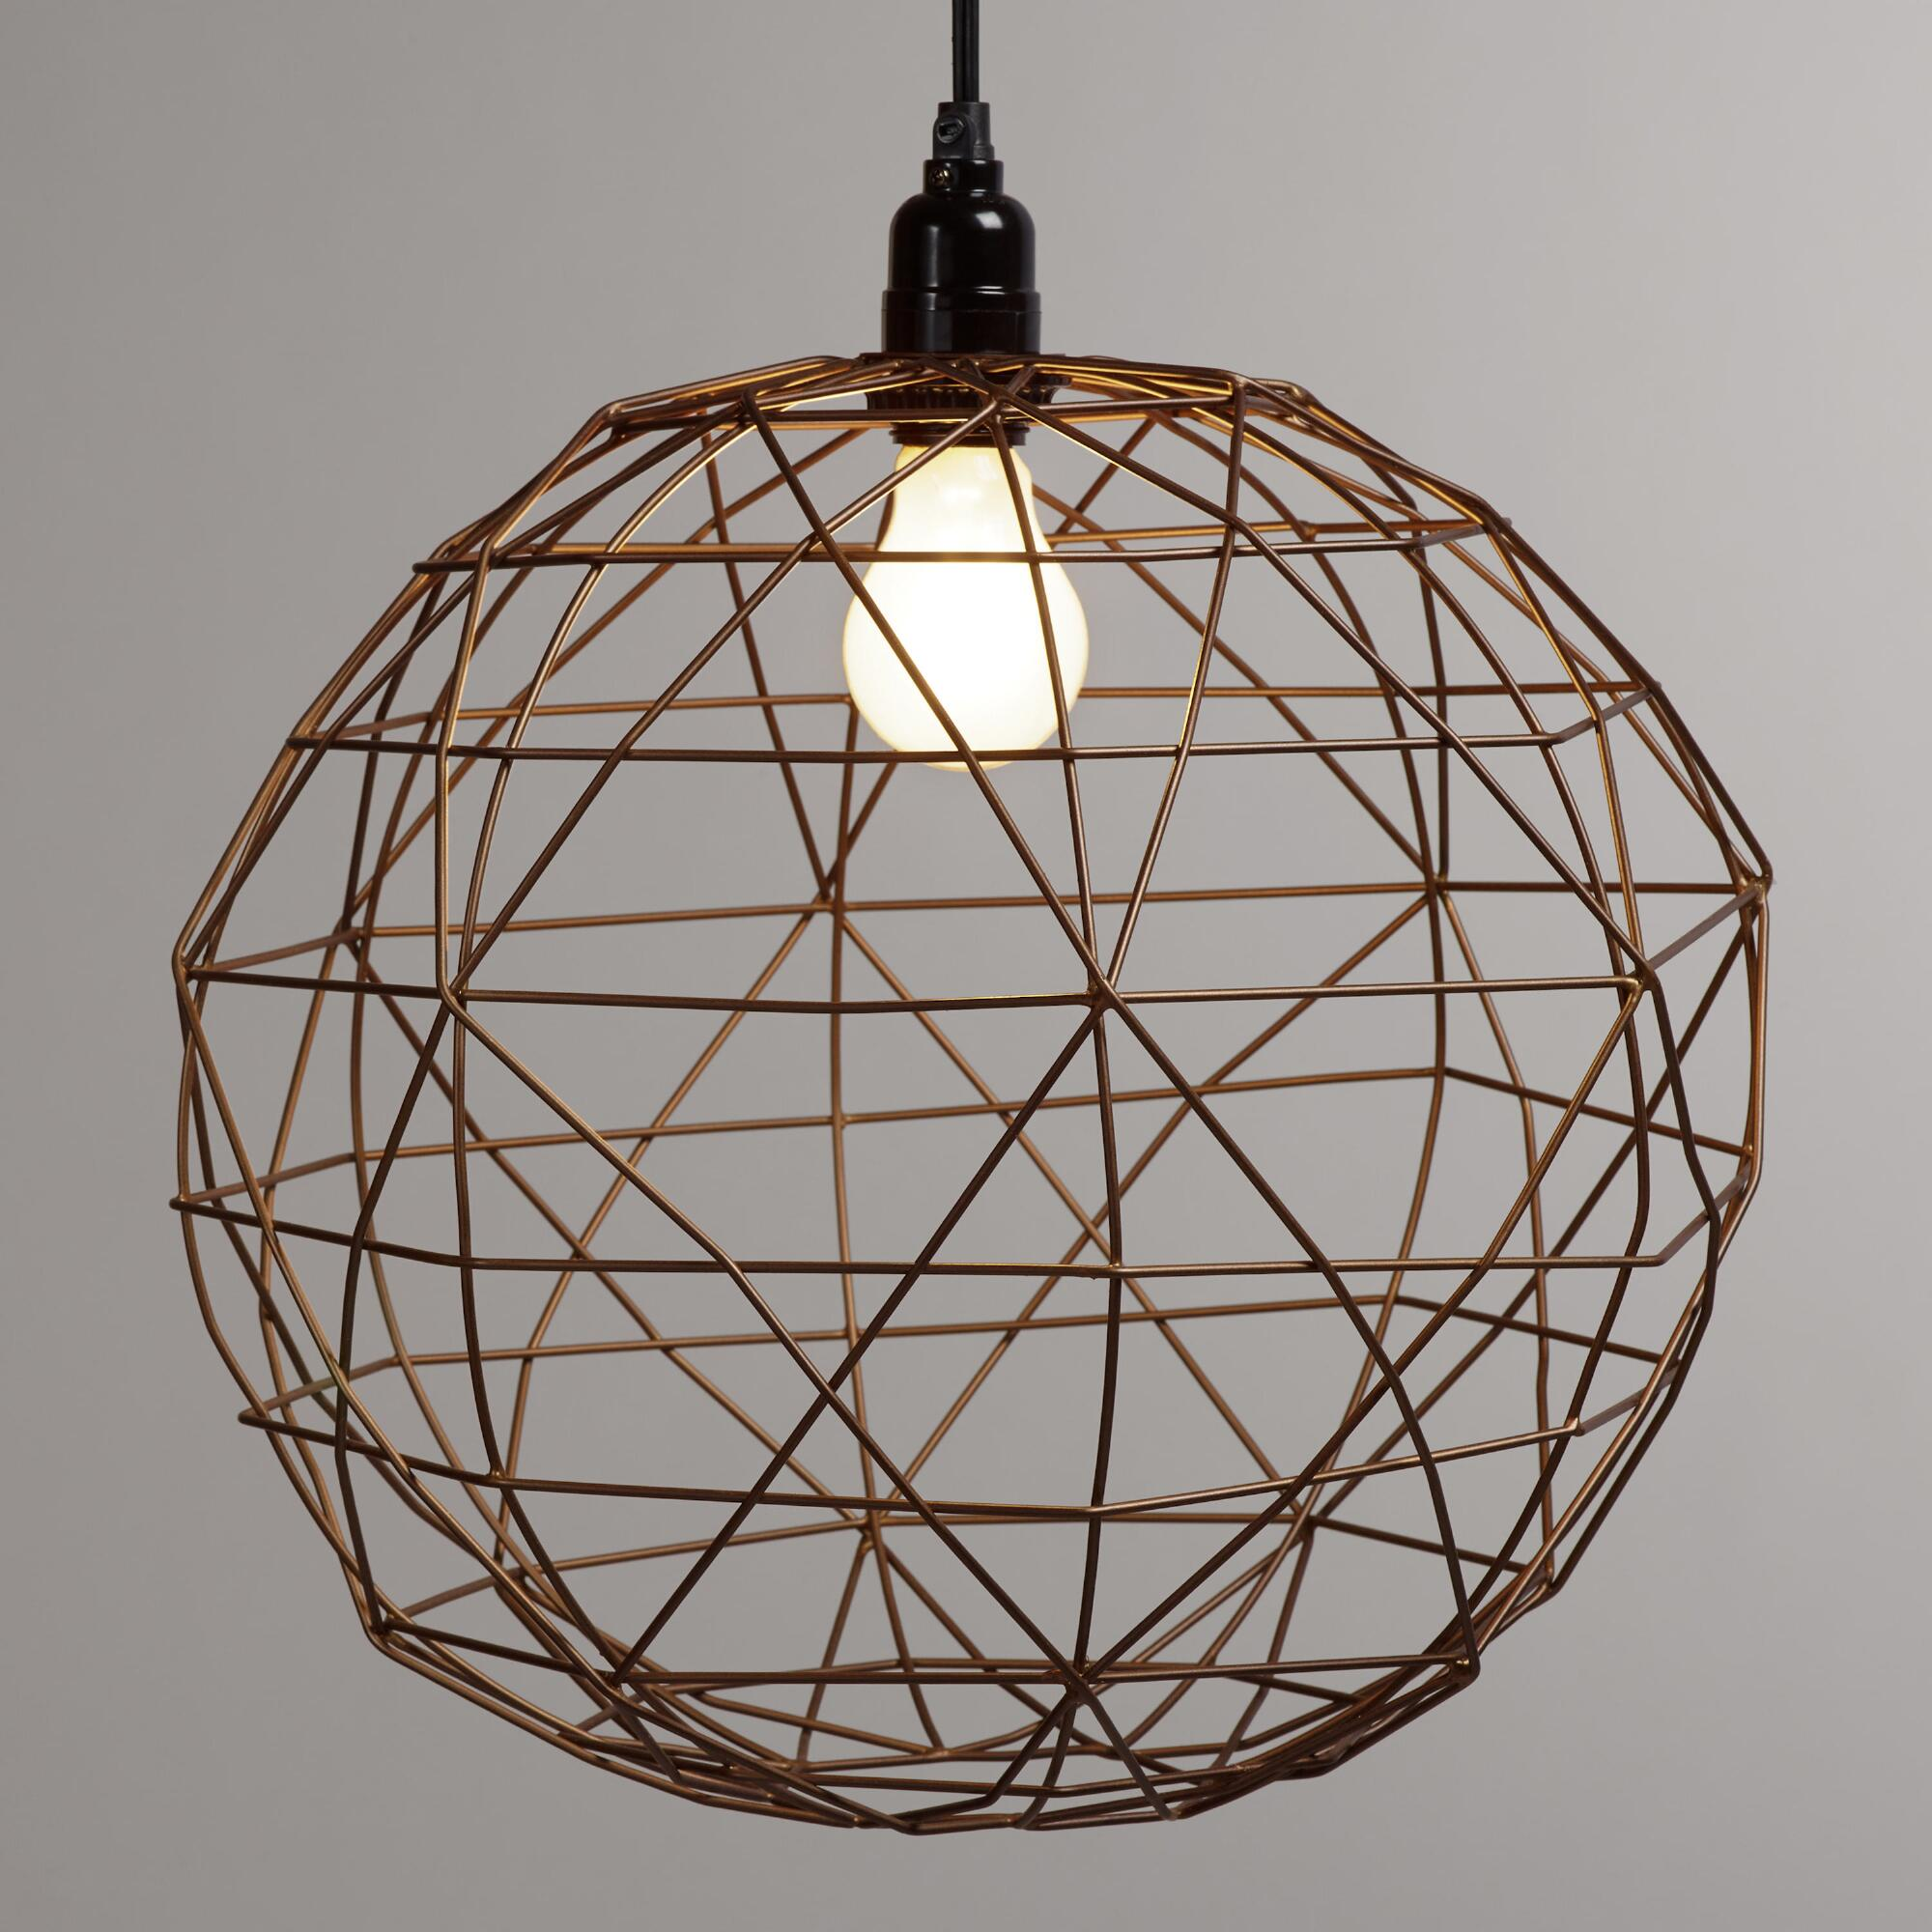 Hanging Light Round: Bronze Round Twisted Wire Pendant Shade